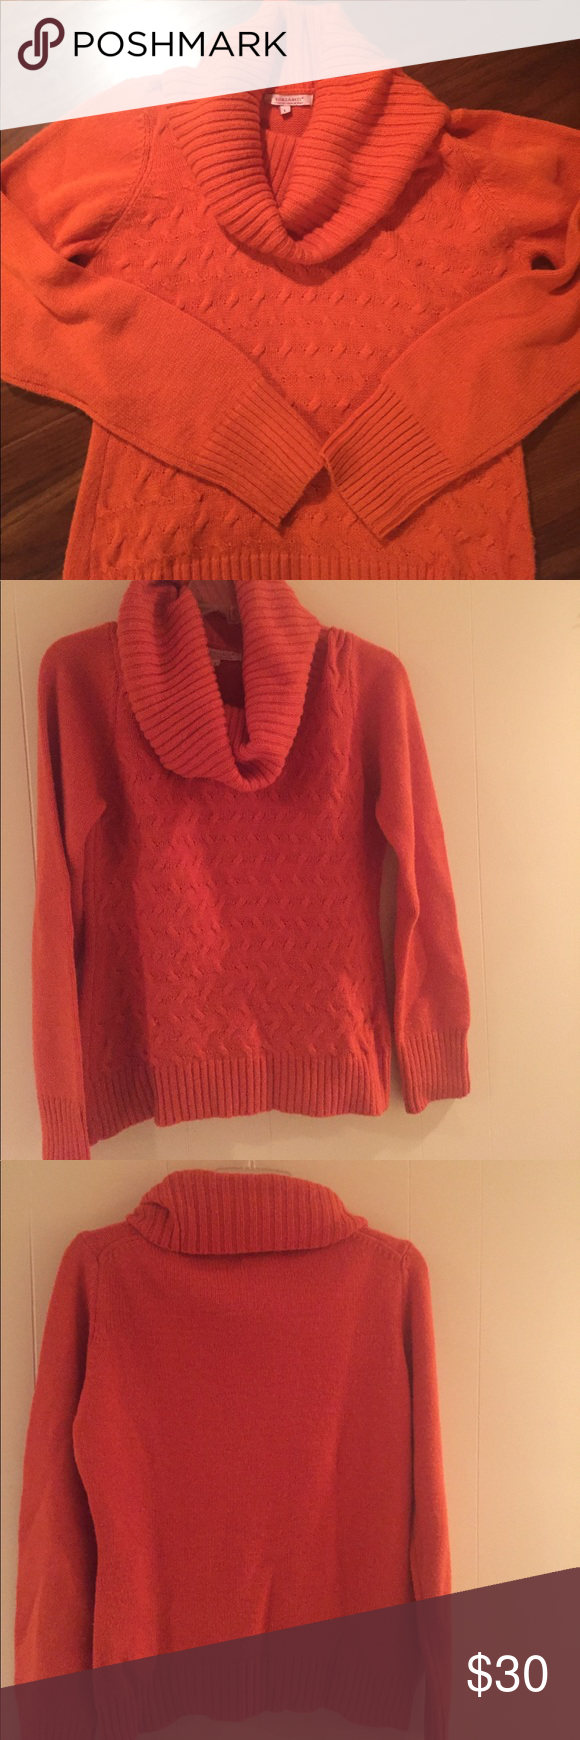 Italian Wool Blend Orange Cowl Neck Sweater Italian Deep Orange Cowl